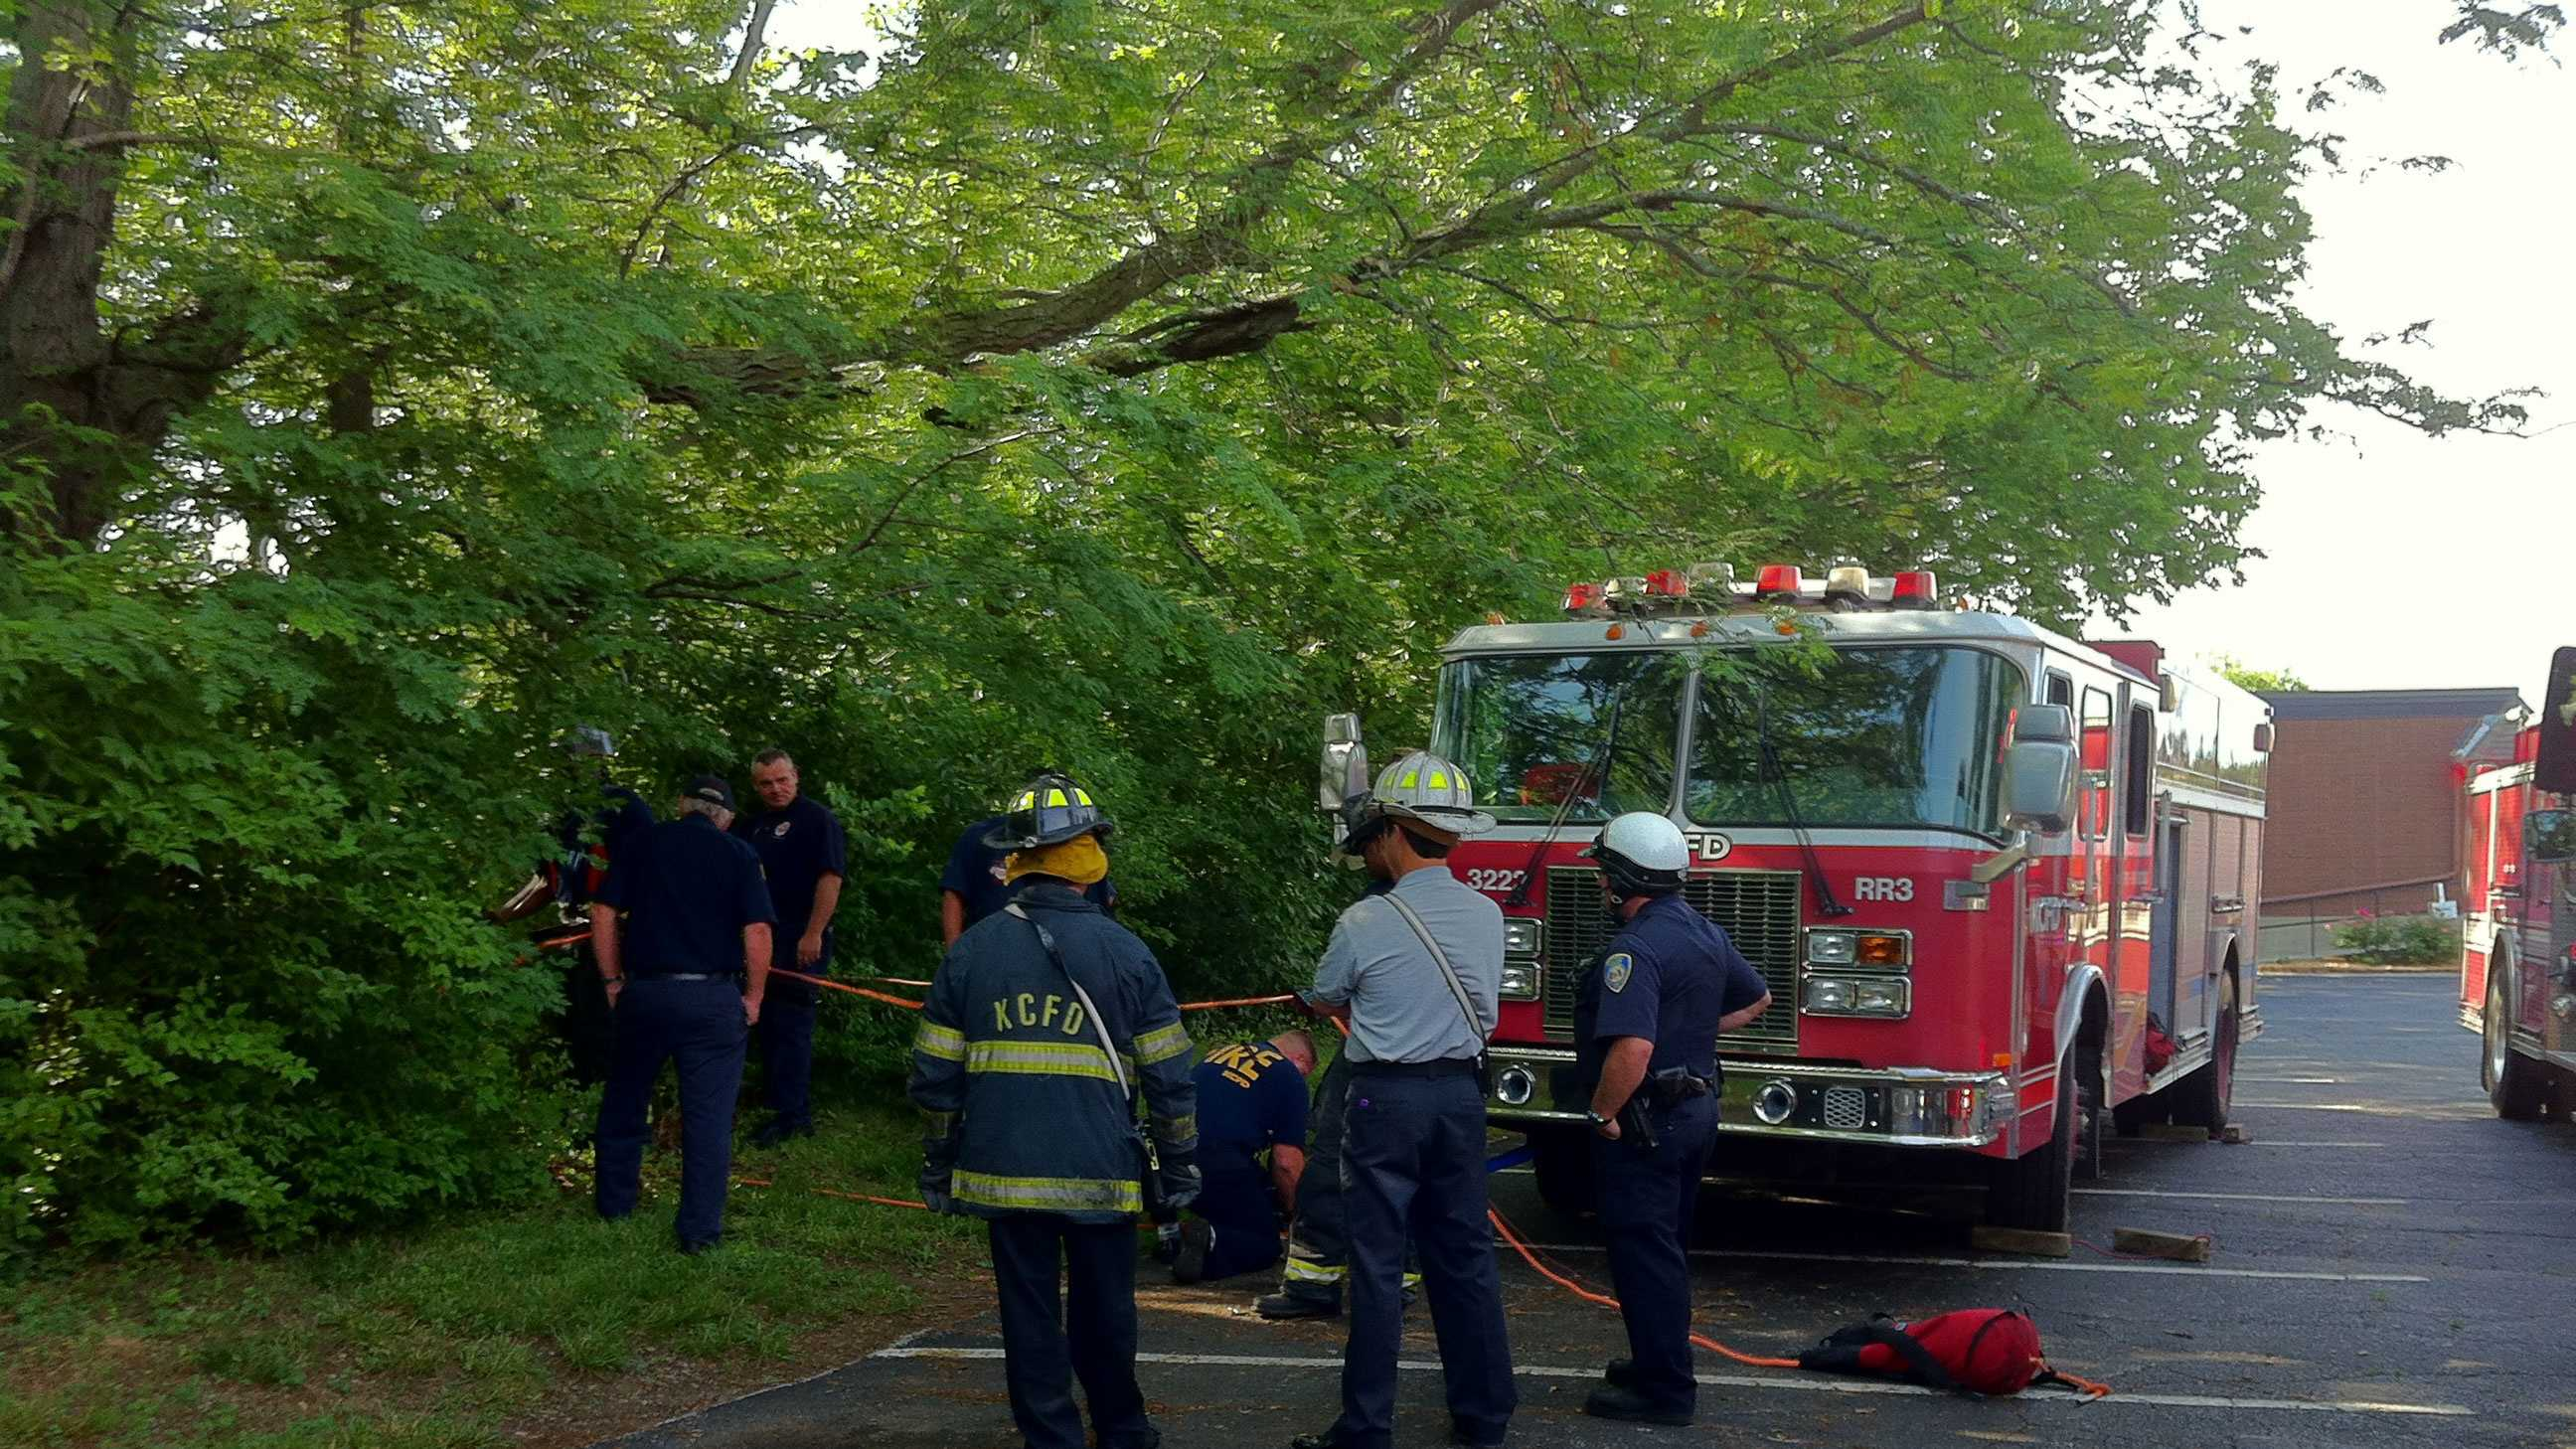 Man rescued from ravine in Raytown